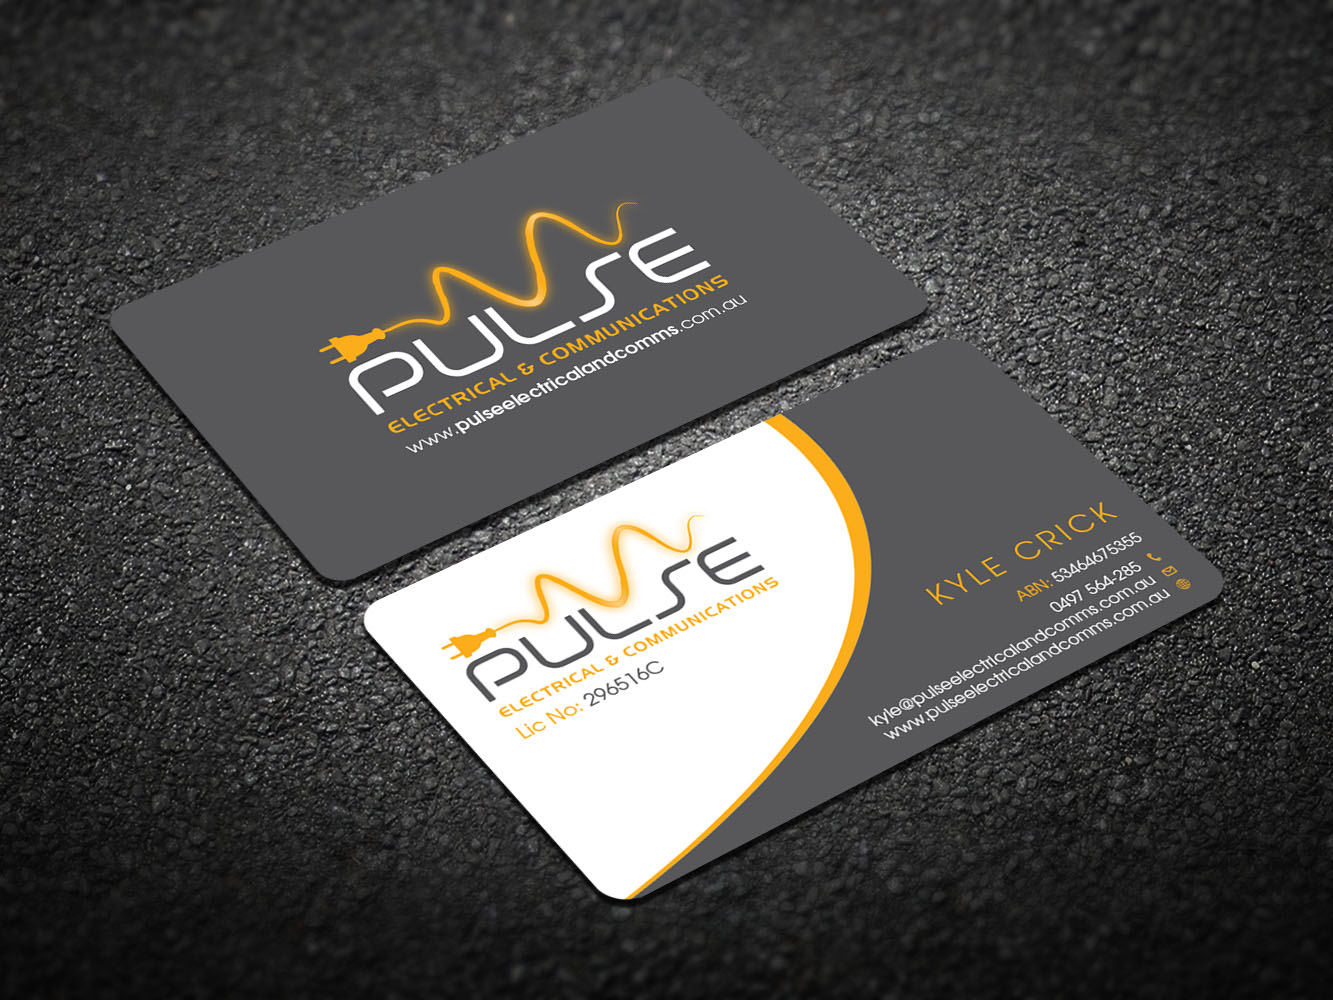 203 professional business card designs electrician business card business card design by design xeneration for pulse electrical and communications design colourmoves